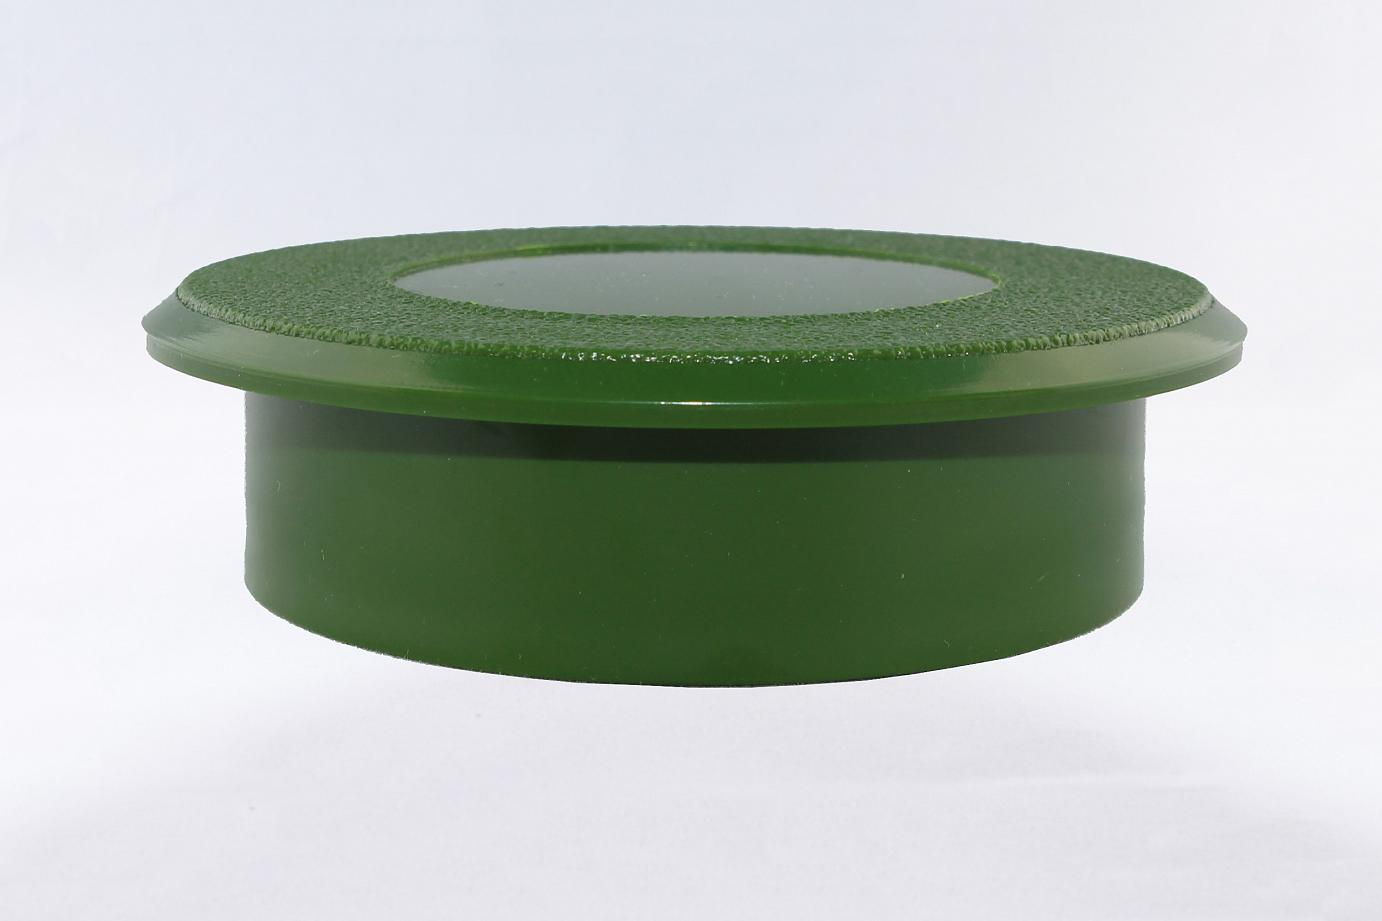 Golf Hole Cup Cover for Putting Green Cups Artificial Grass Synthetic Grass Tools Installation | Texas Grass